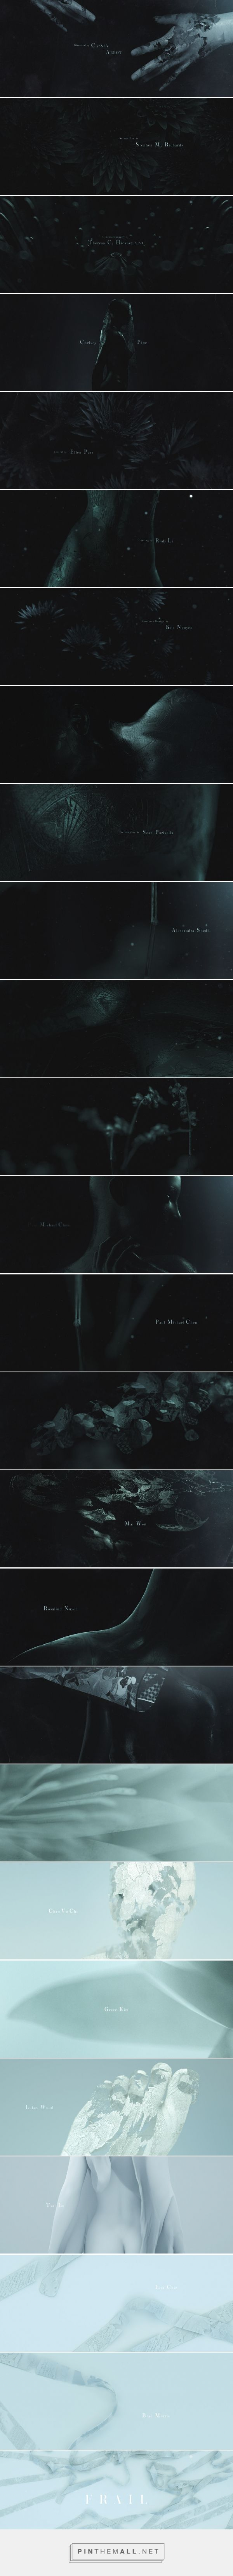 FRAIL - MAIN TITLE DESIGN : Ash Thorp... - a grouped images picture - Pin Them…